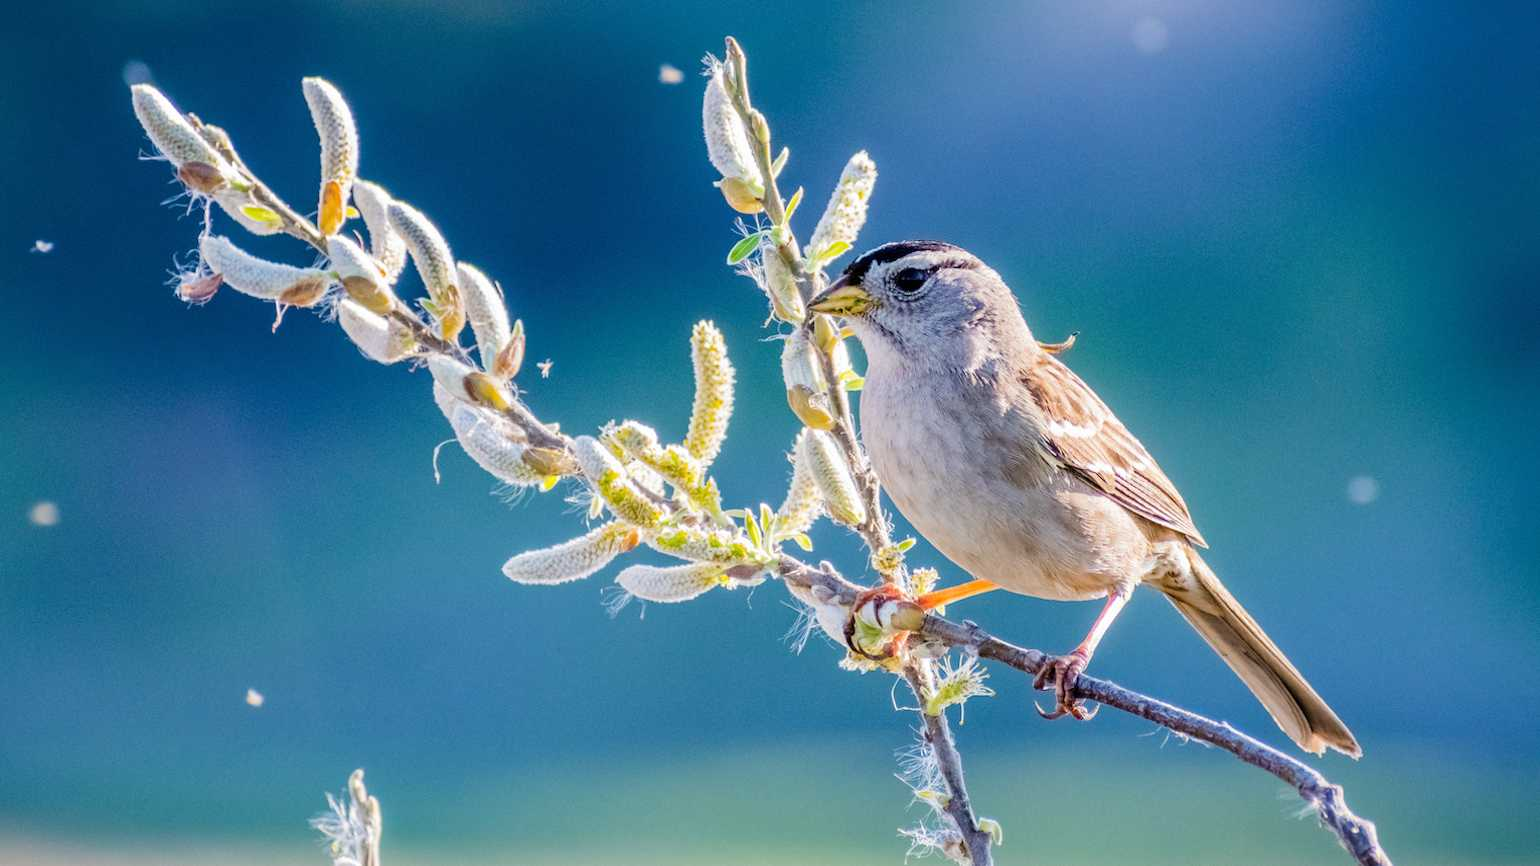 Sparrow in the spring